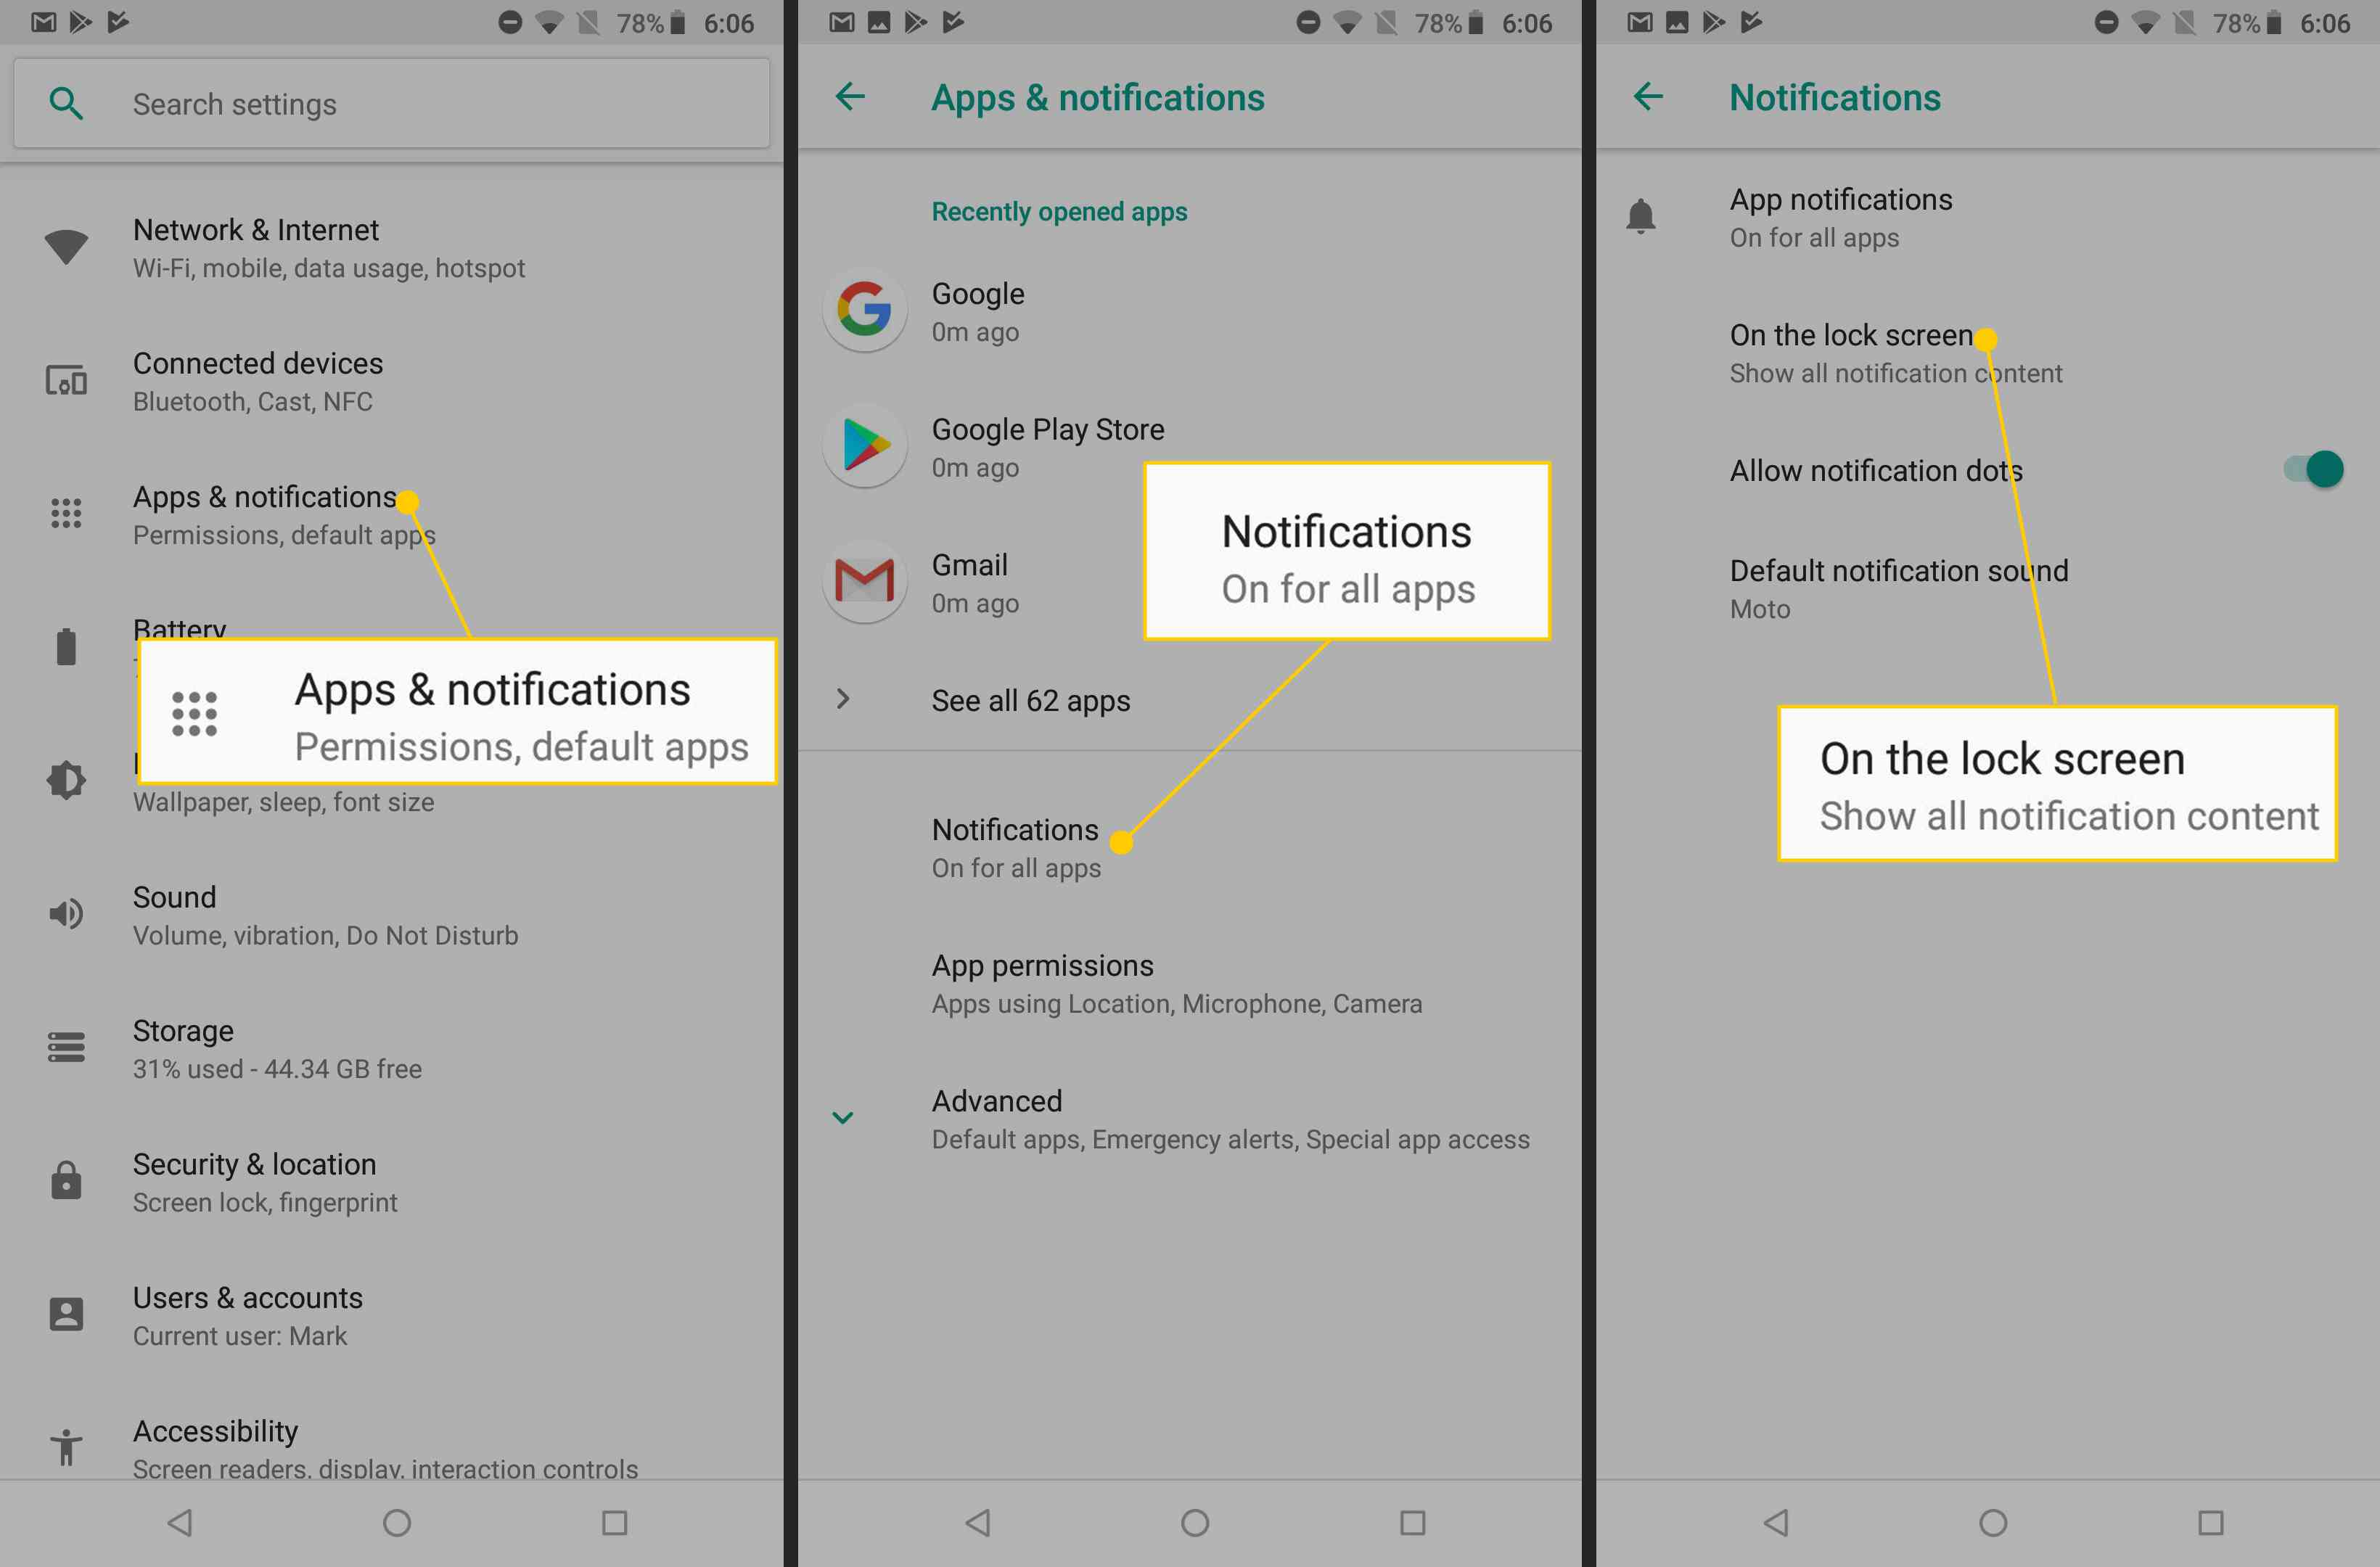 Apps & notifications, Notifications, On the lock screen buttons on Android